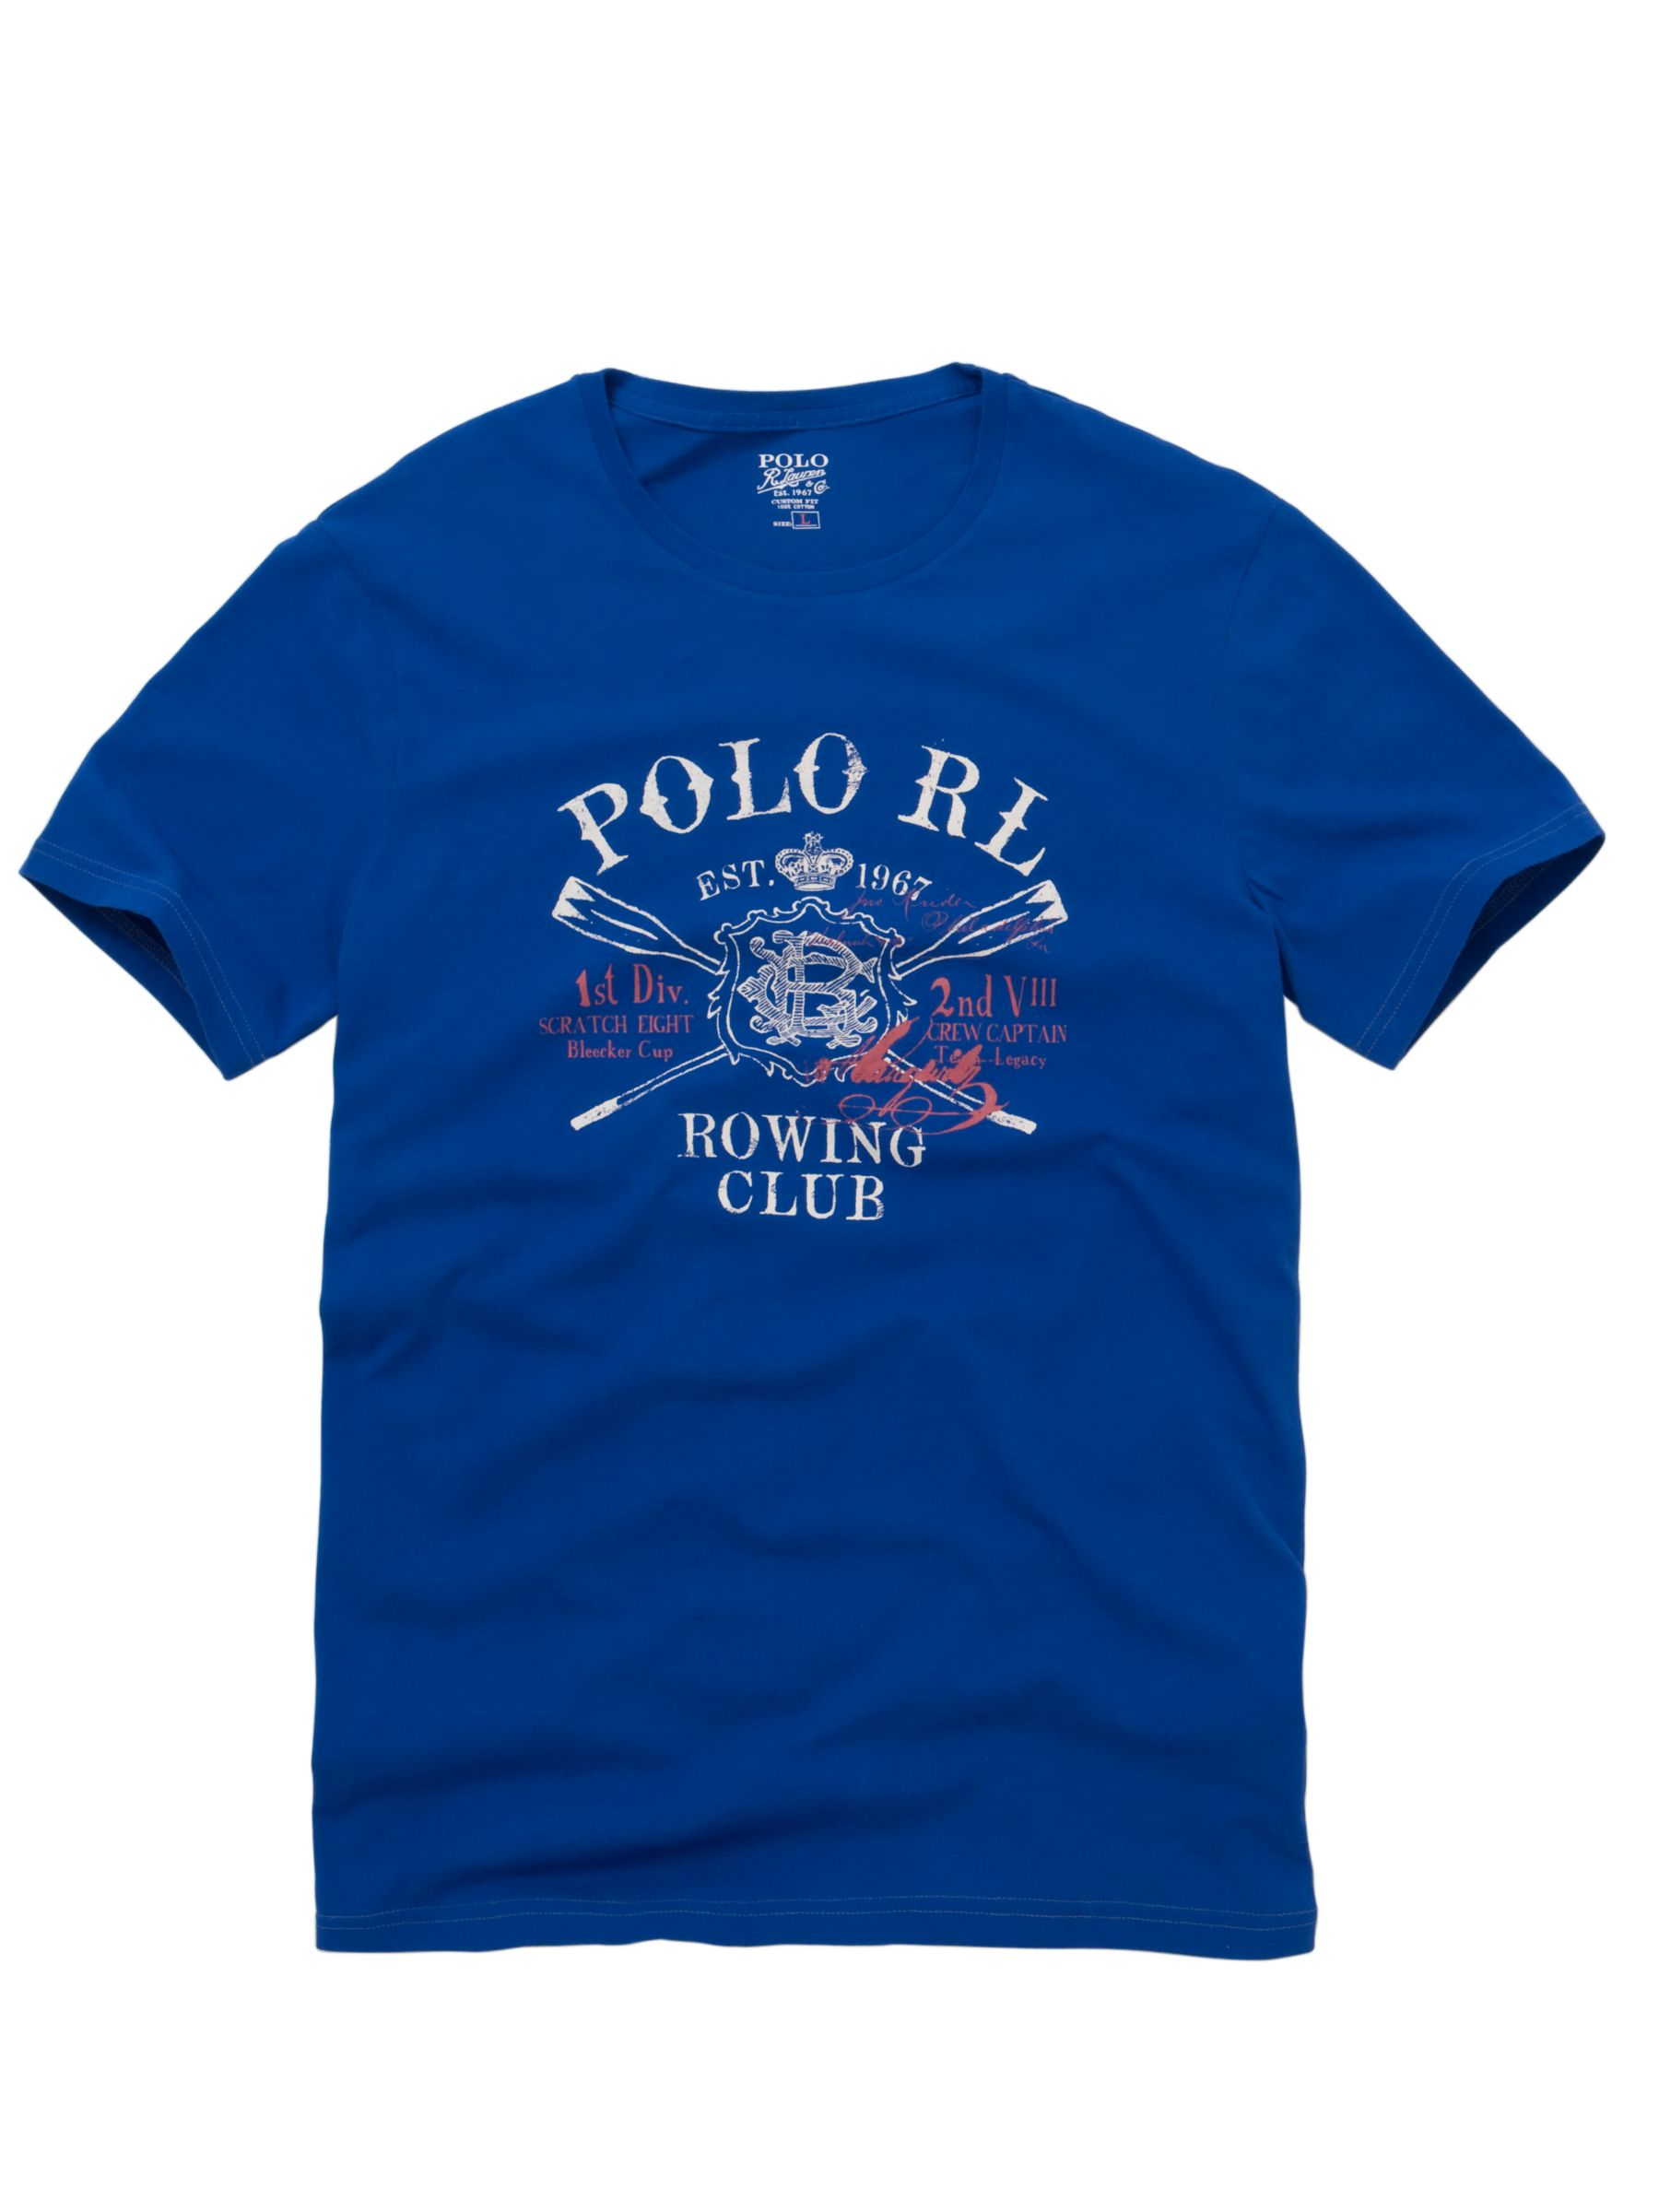 Fishing clothing for Polo shirt with fish logo